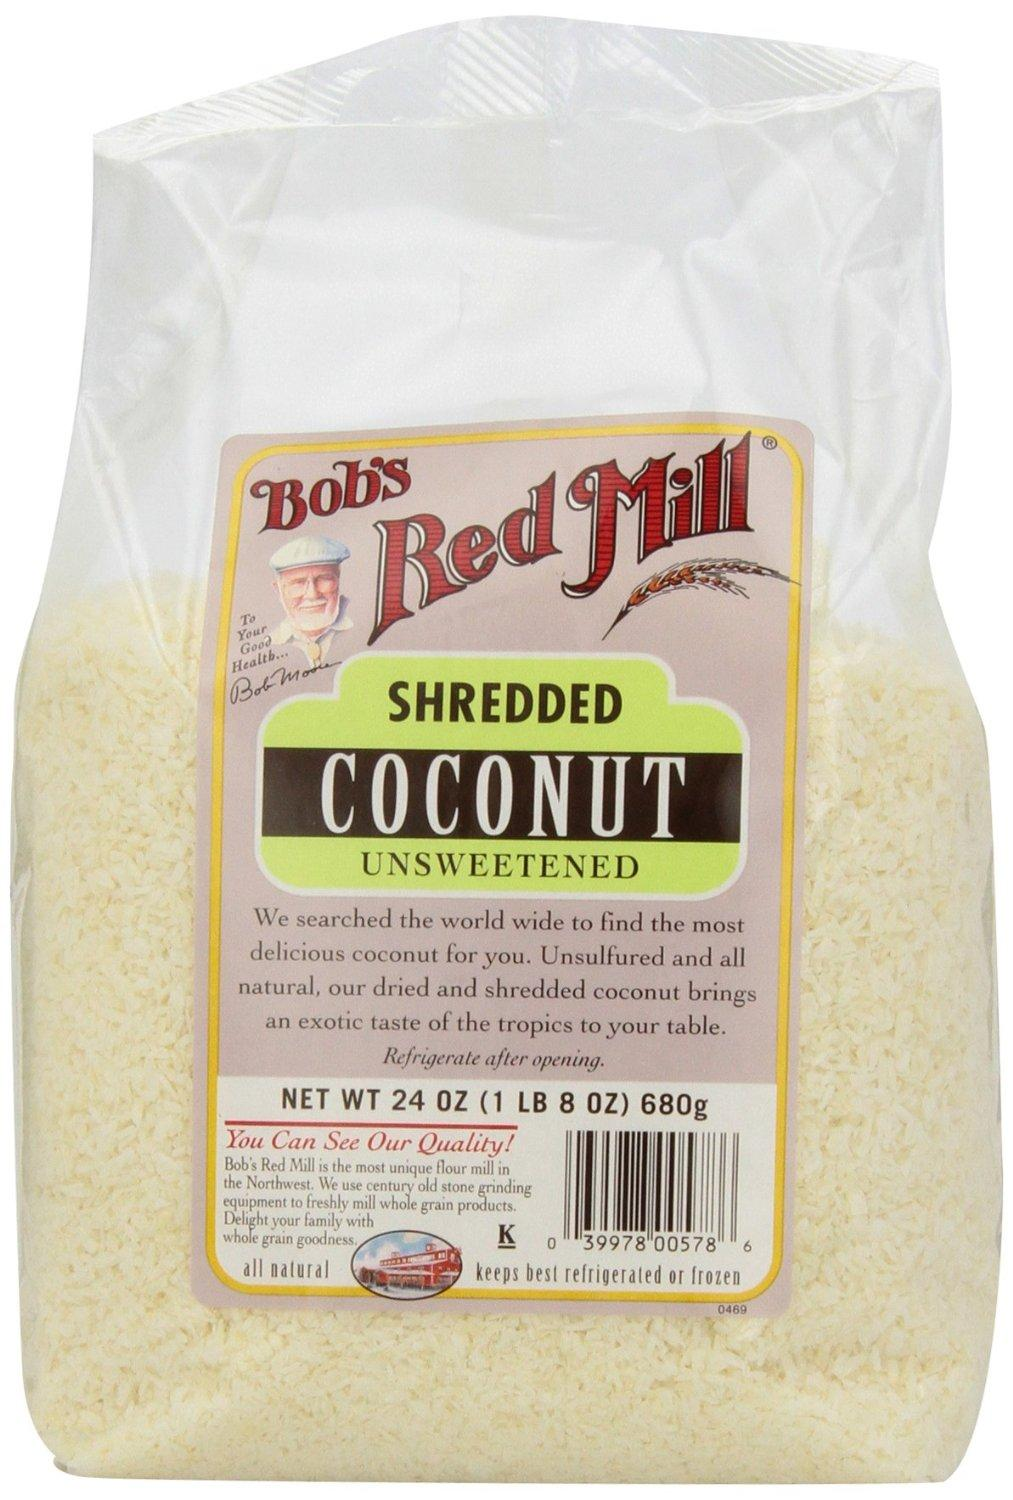 Bob's Red Mill Unsweetened Medium Shredded Coconut, 24-Ounce Packages (Pack of 4)